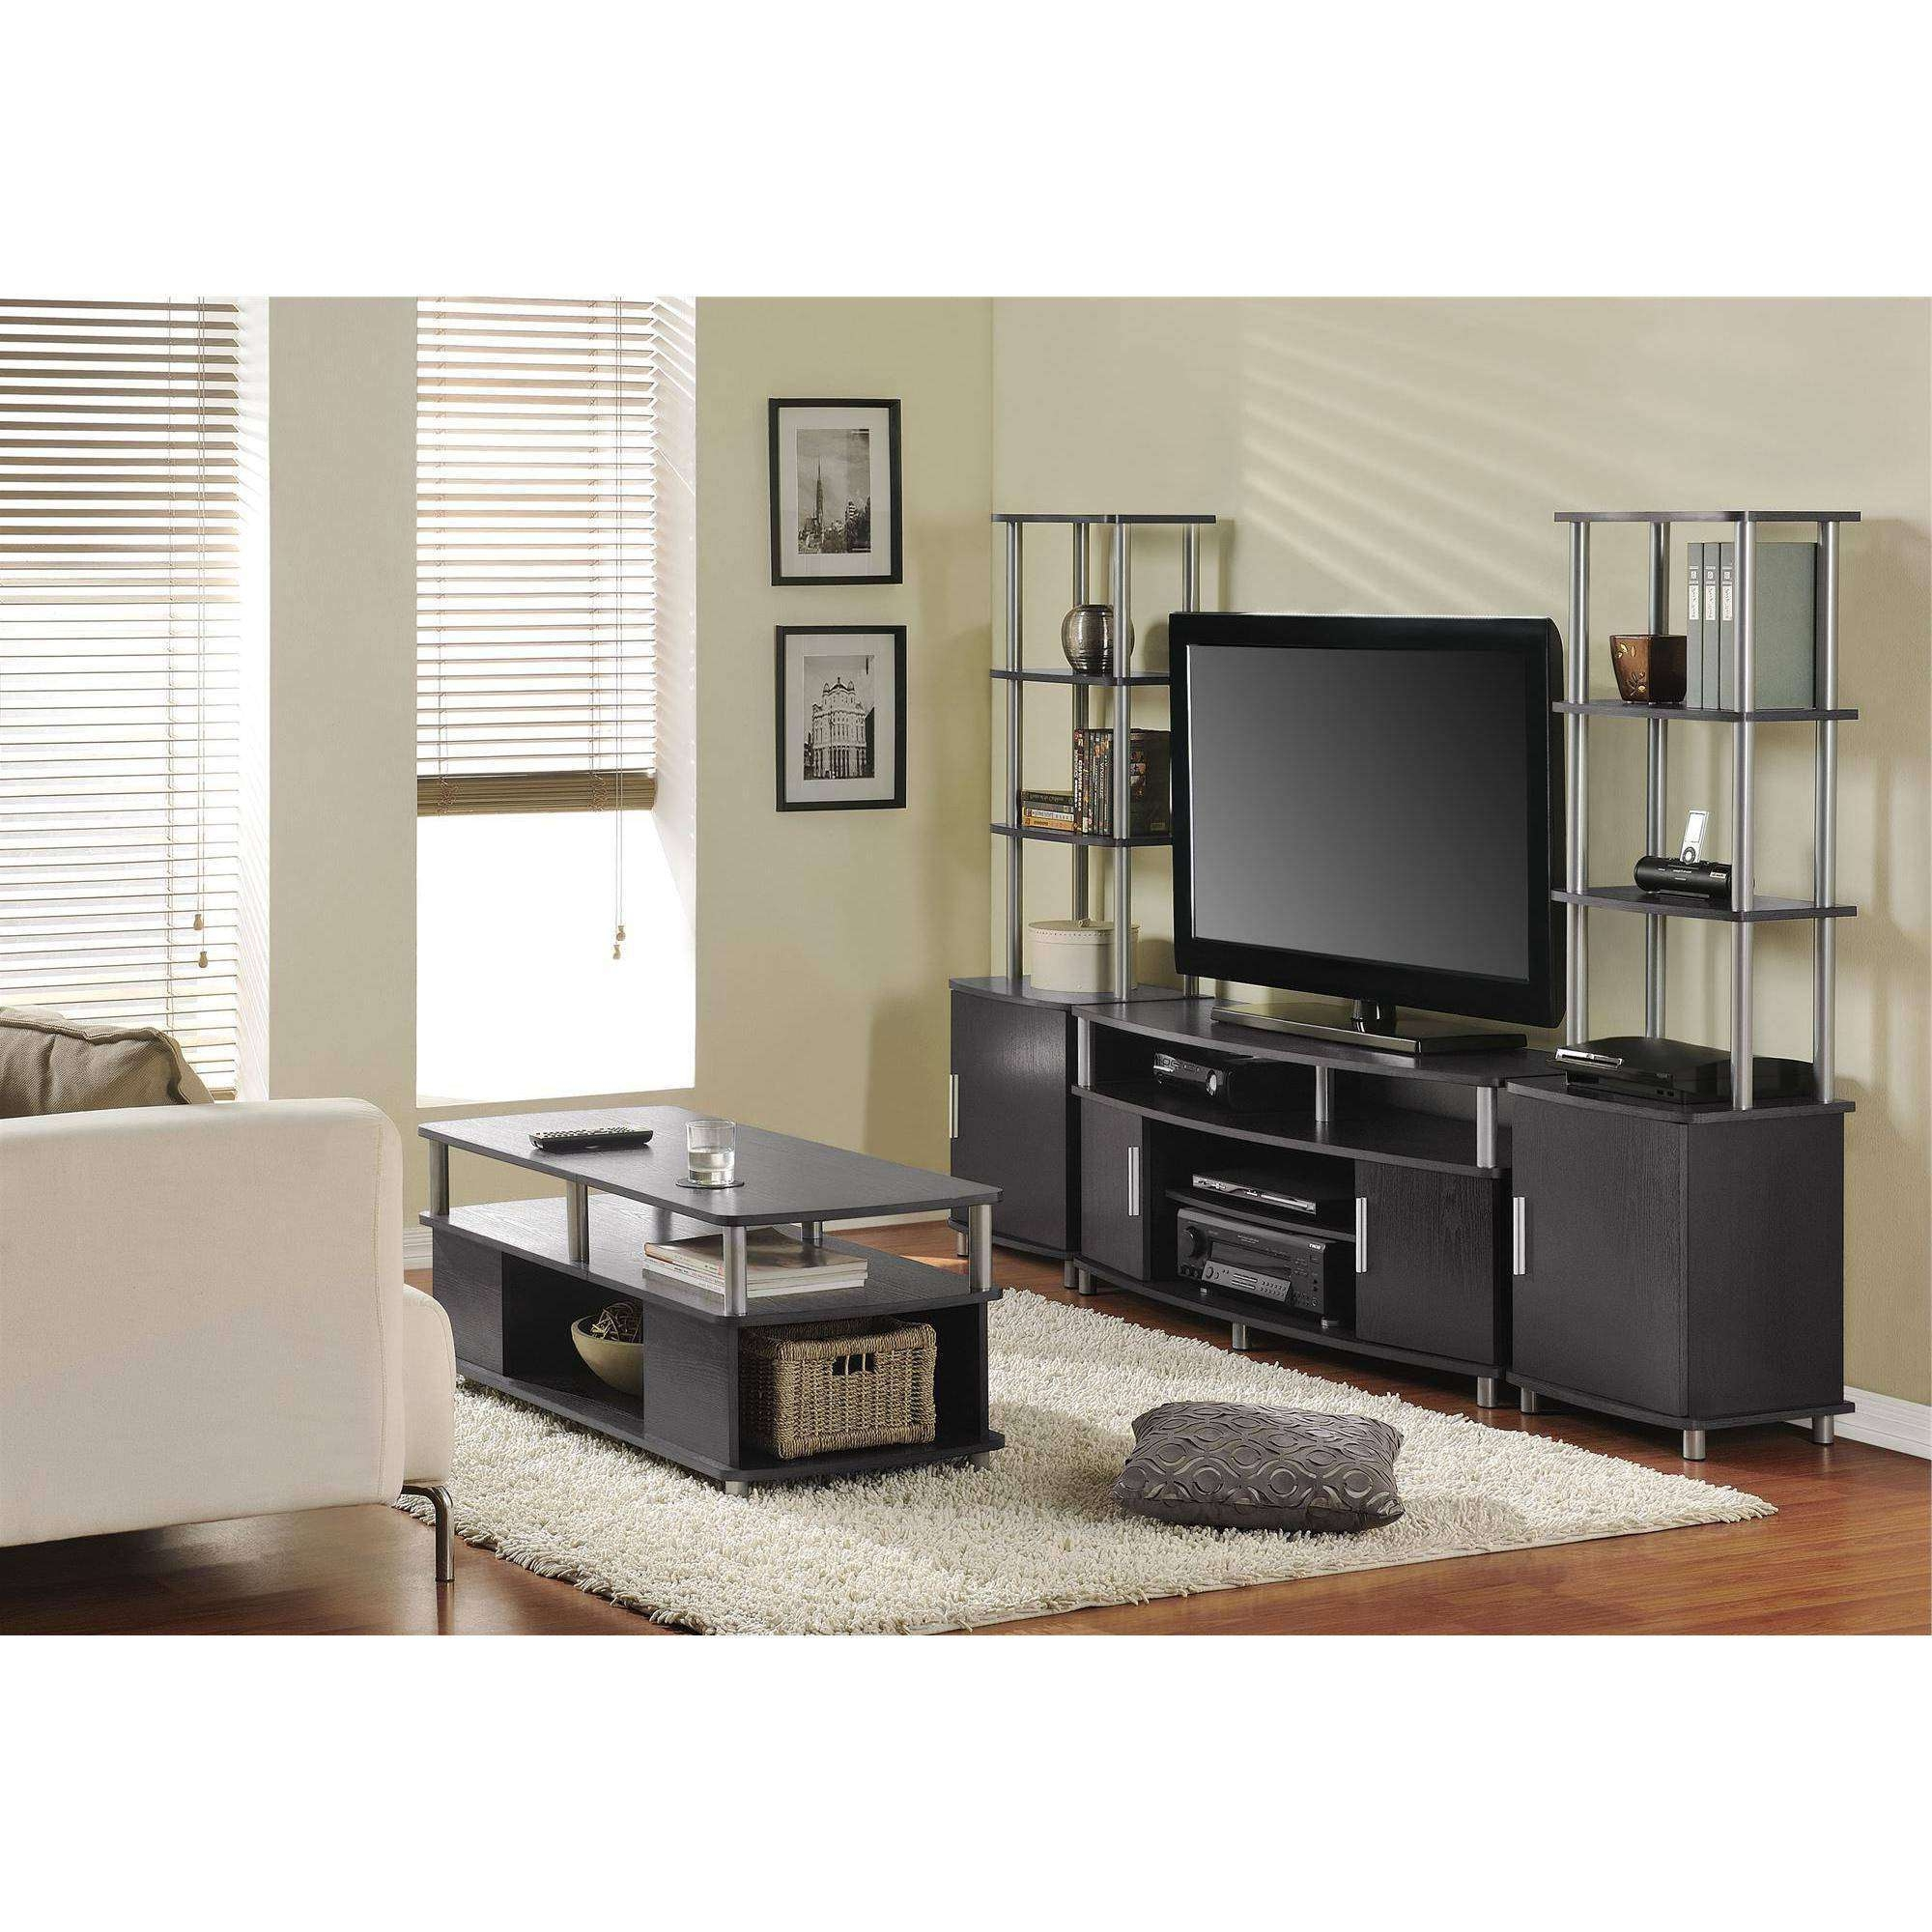 Coffee Table : Marvelous Coffee And End Table Sets Black Coffee Within Tv Cabinets And Coffee Table Sets (View 6 of 20)